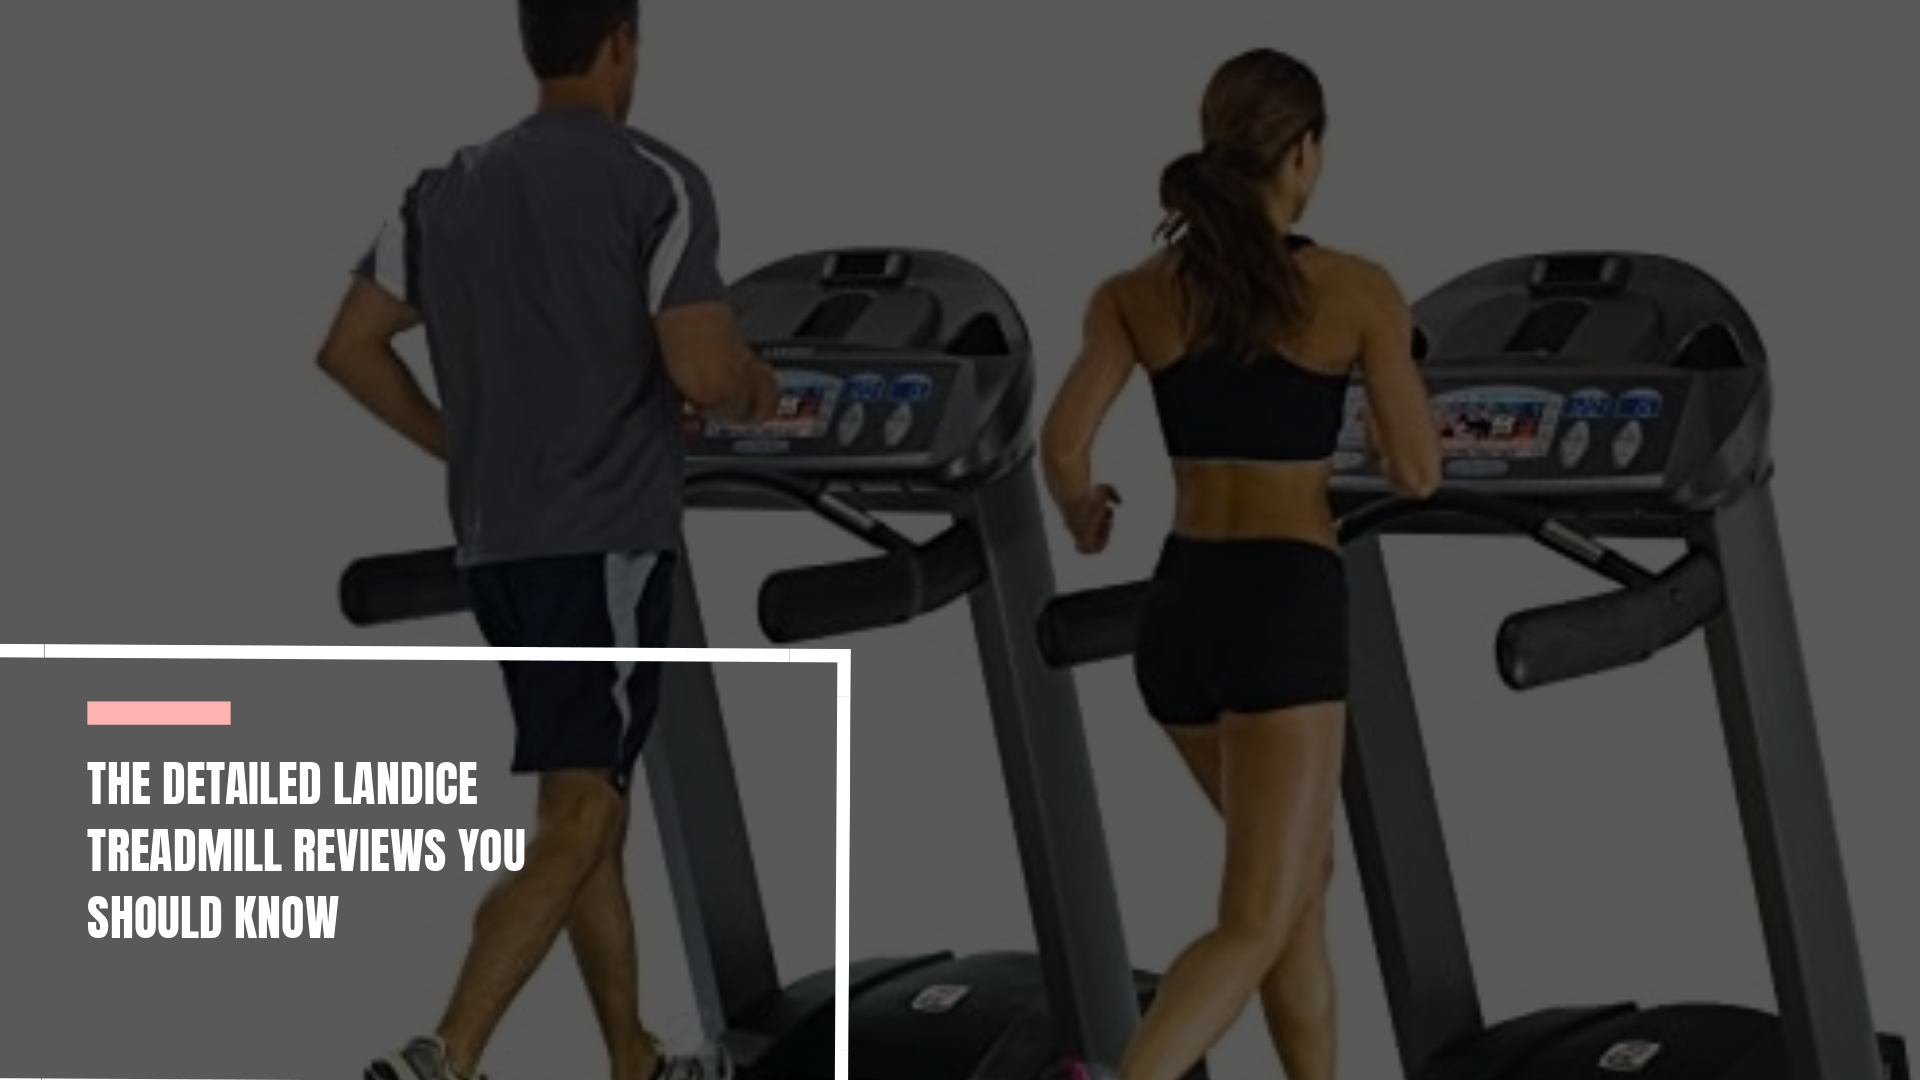 The Detailed Landice Treadmill Reviews You Should Know